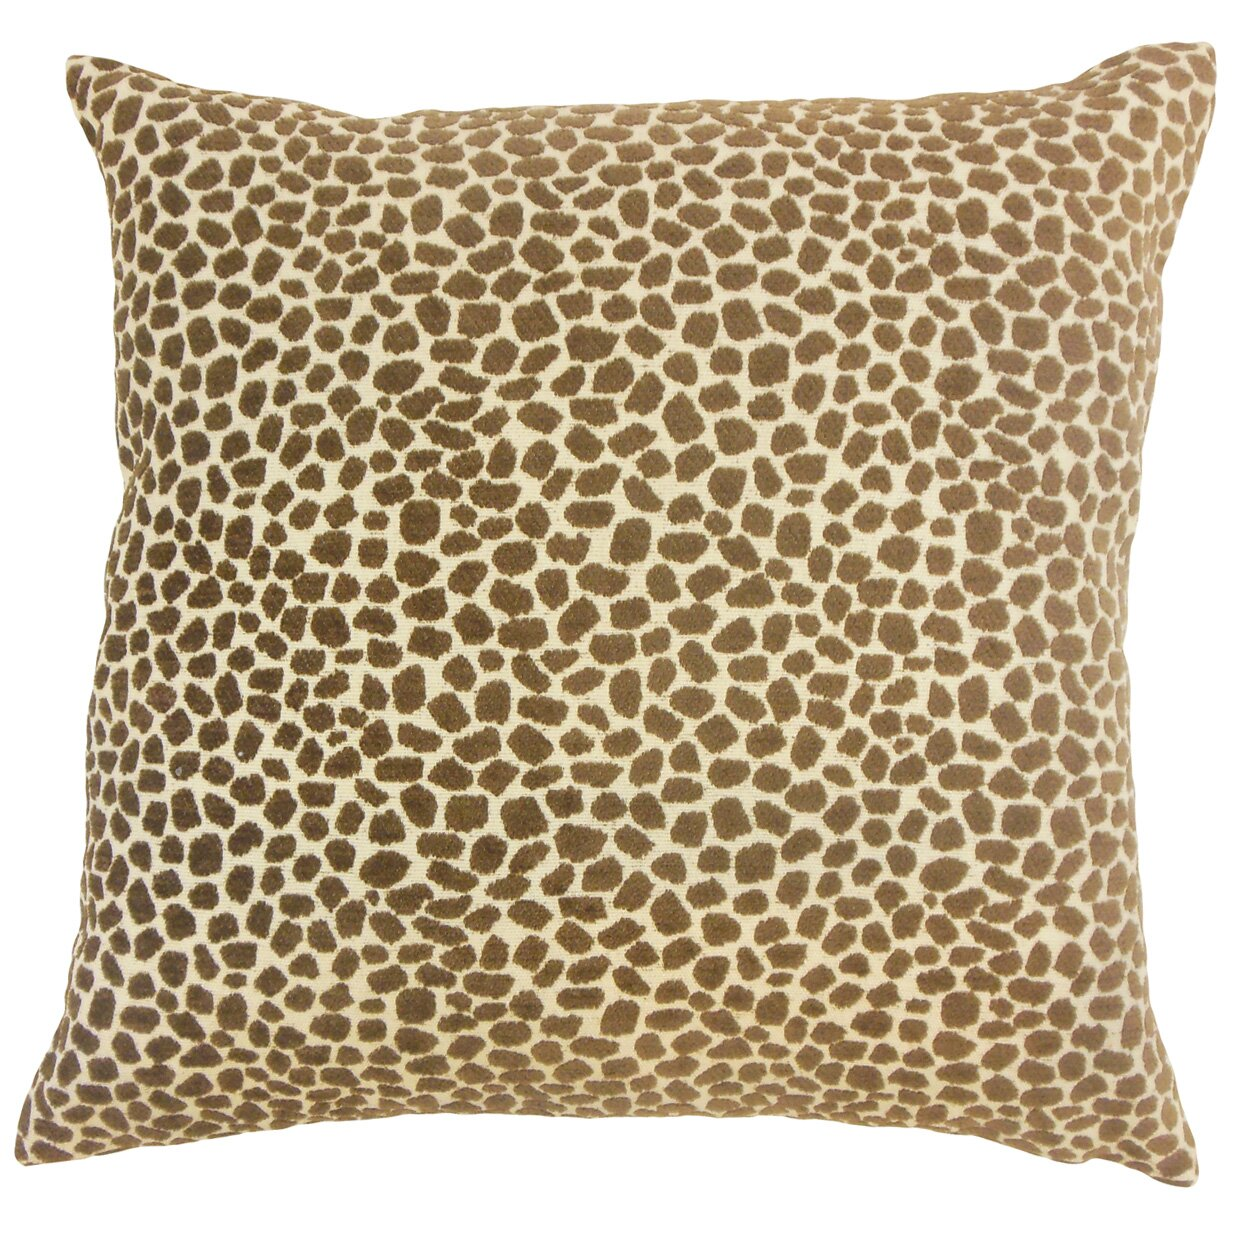 Animal Print Pillows For Couch : Meltem Animal Print Throw Pillow Wayfair